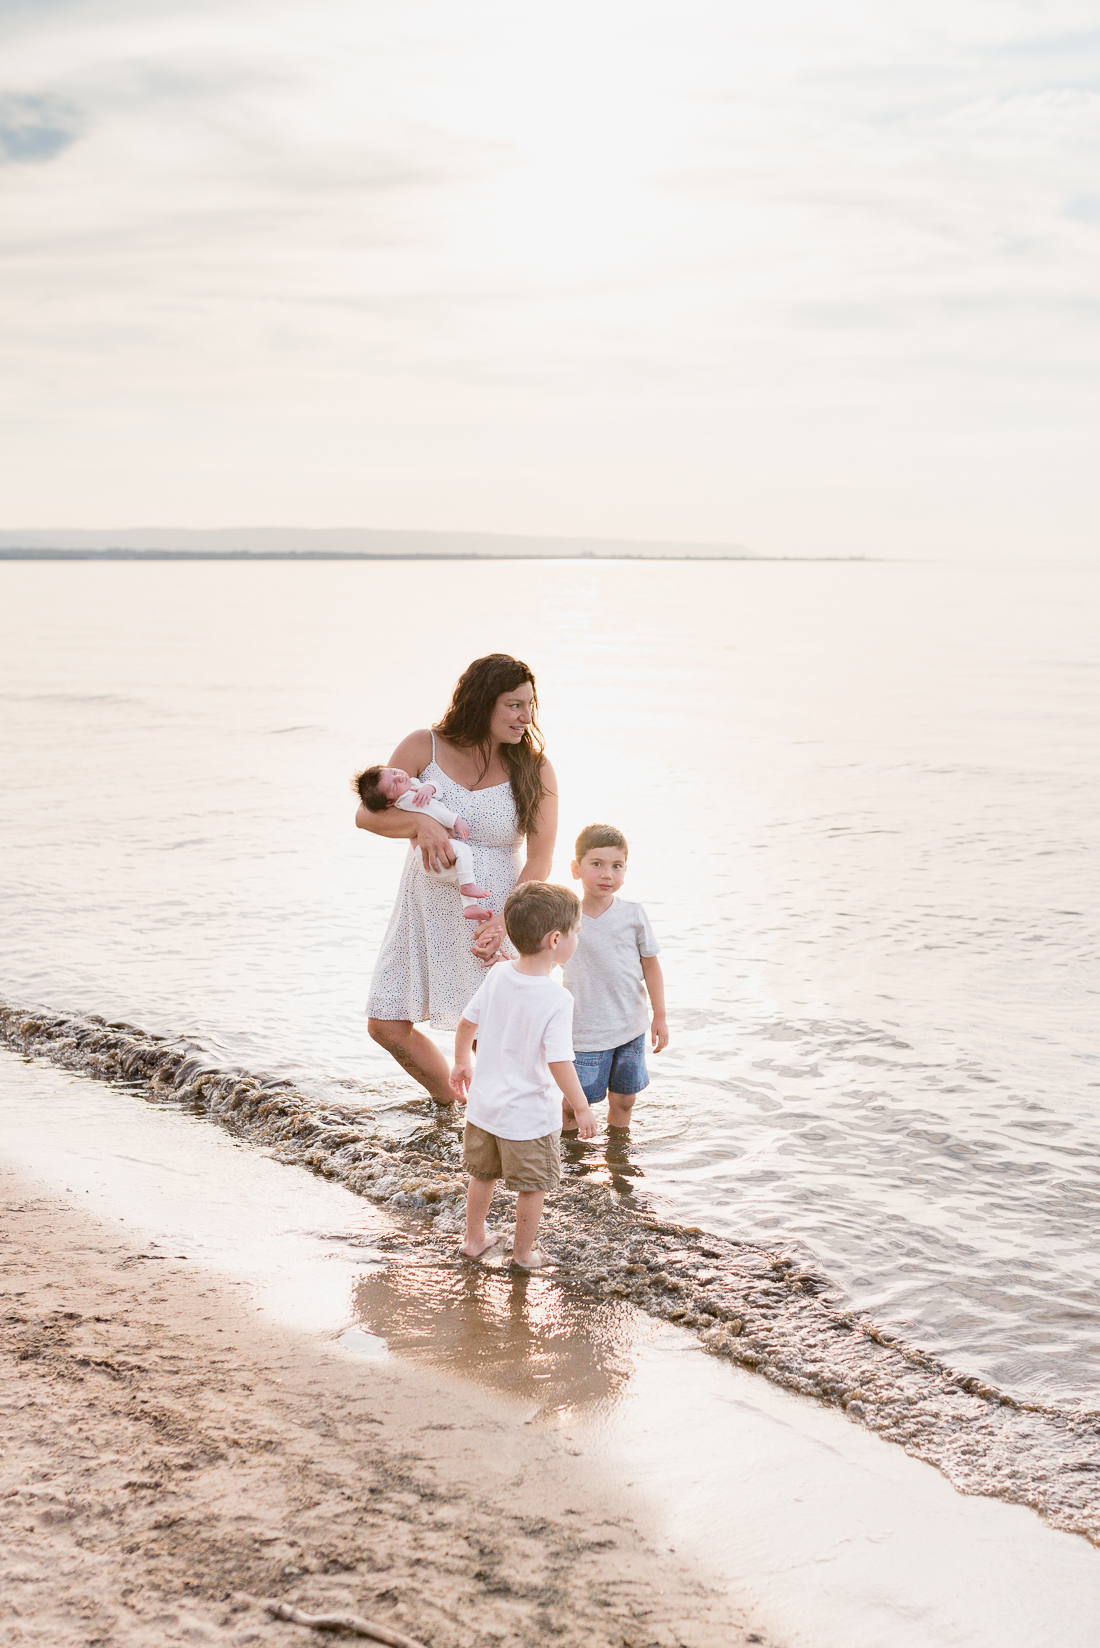 Caledon Family Photographer - The Final Touch Photography